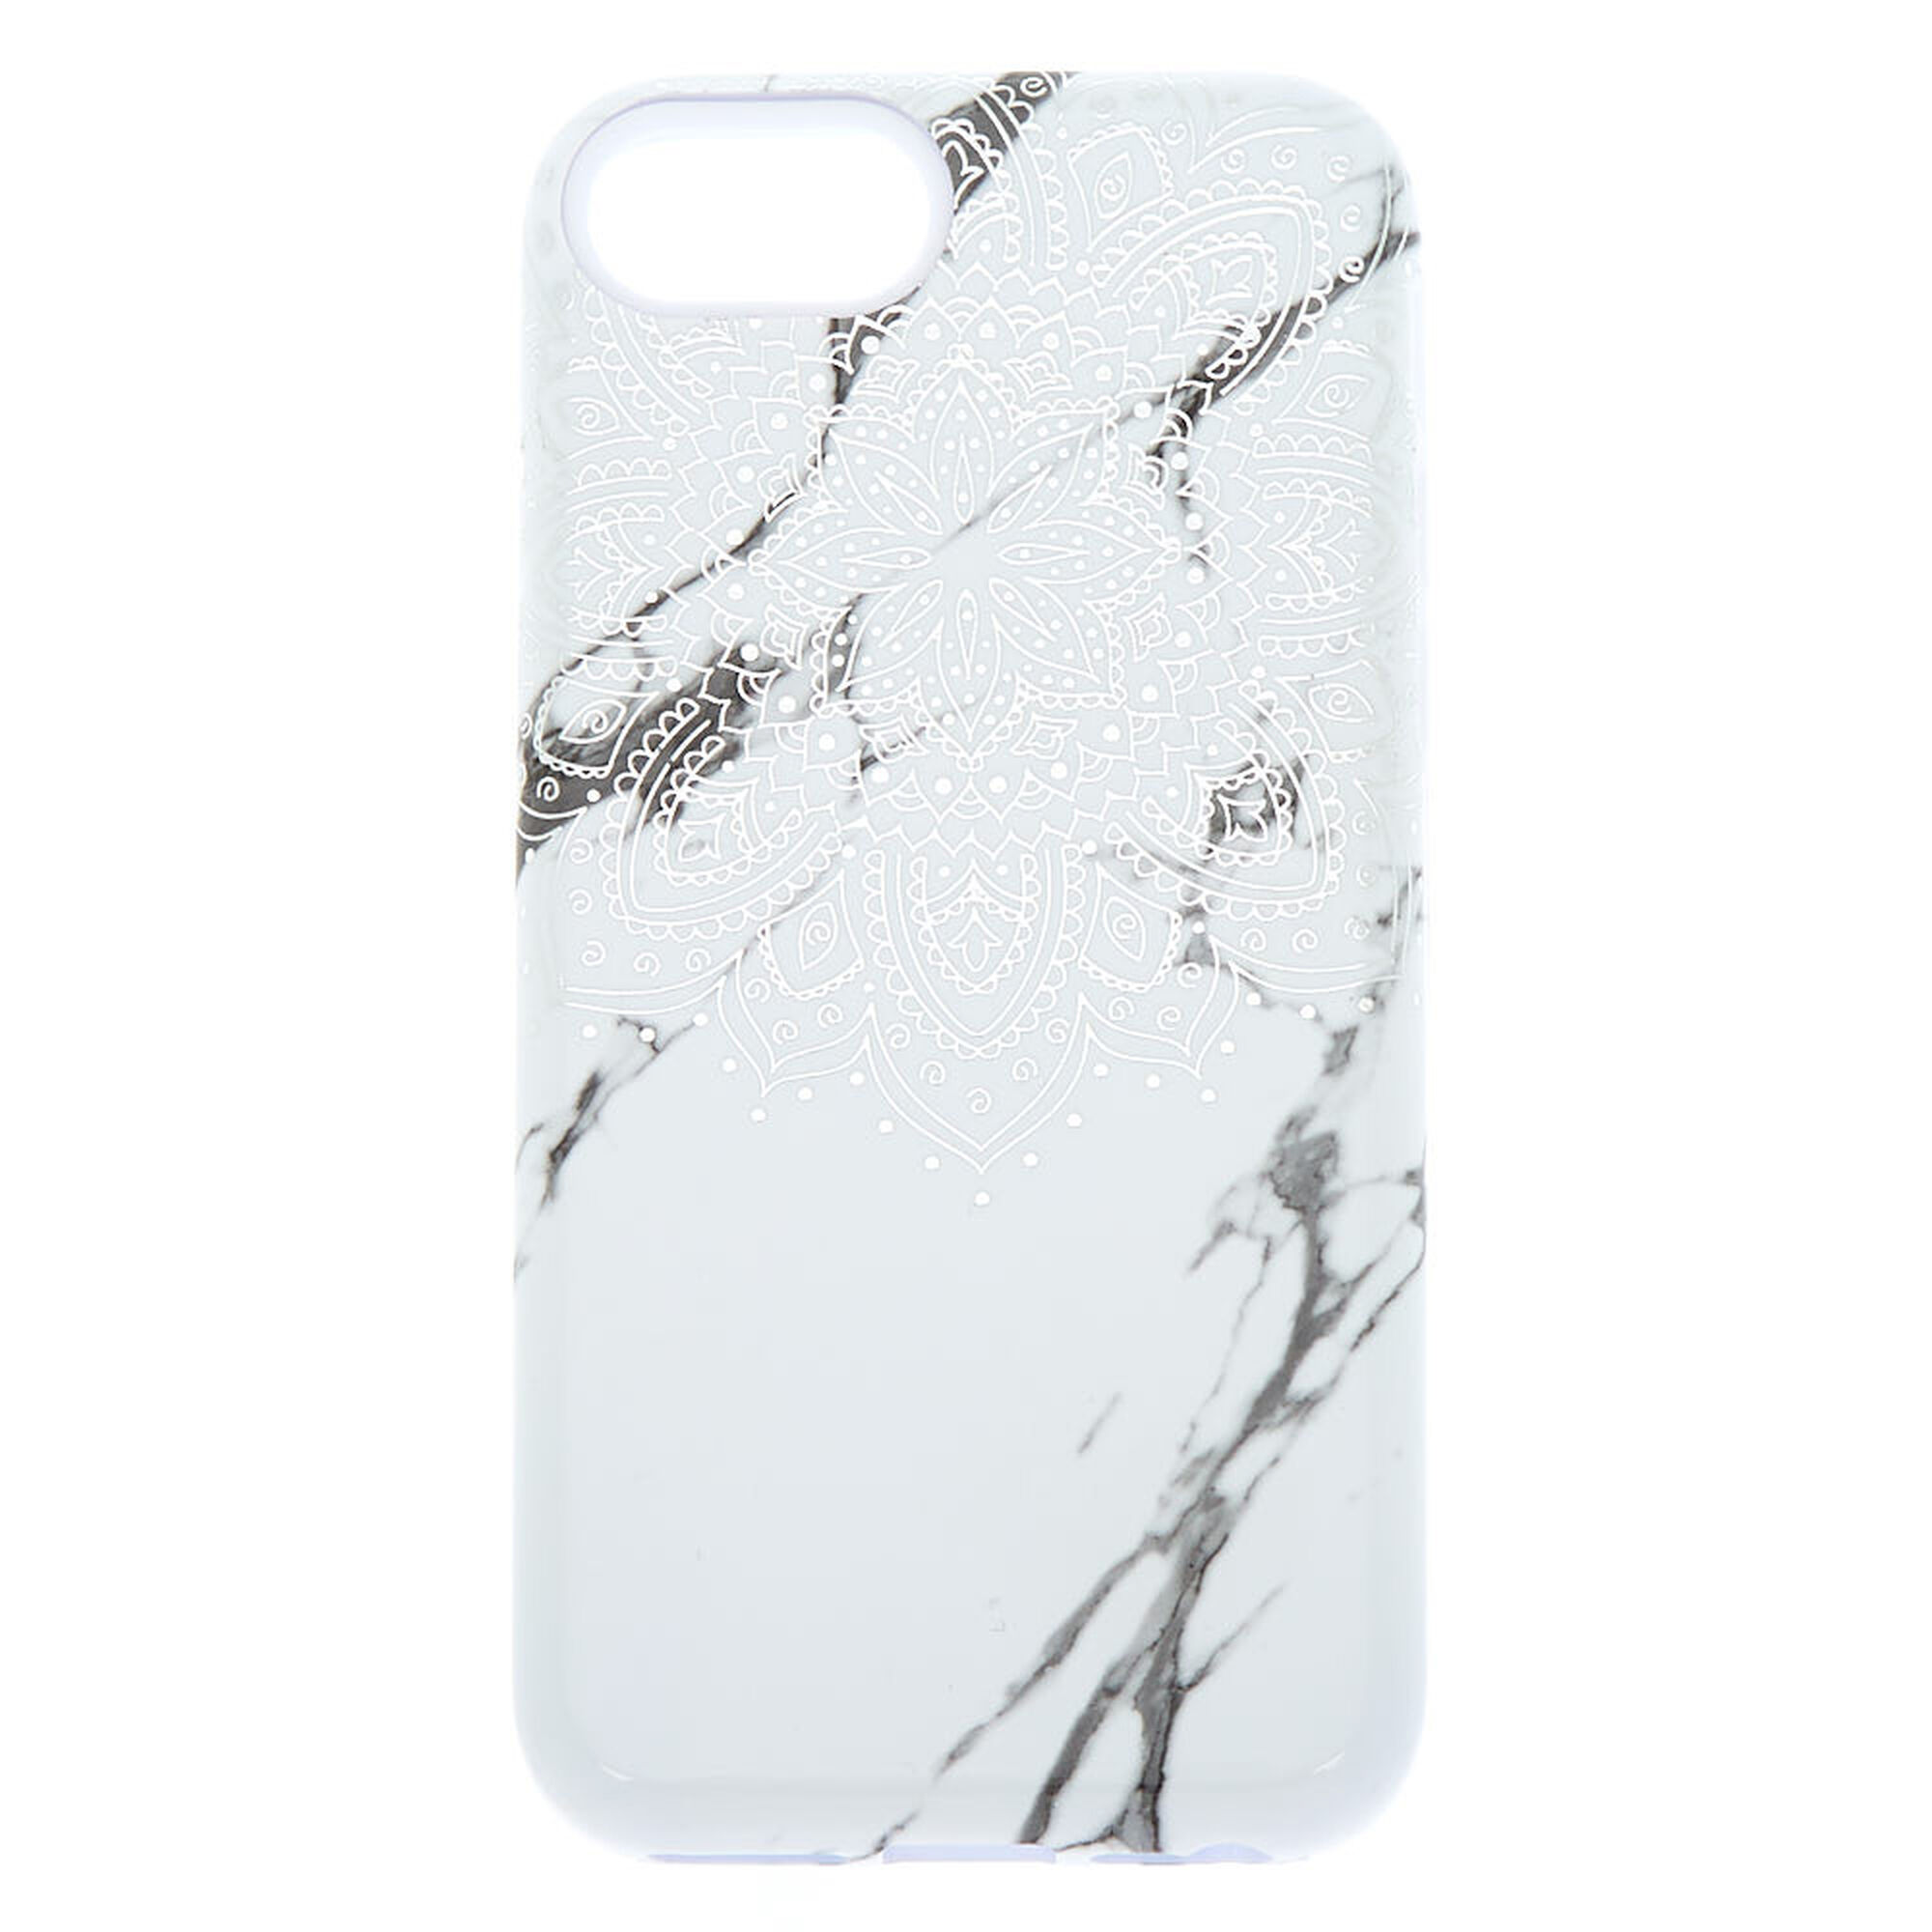 Mandala and Marble Protective Phone Case - White  dacc75f33f